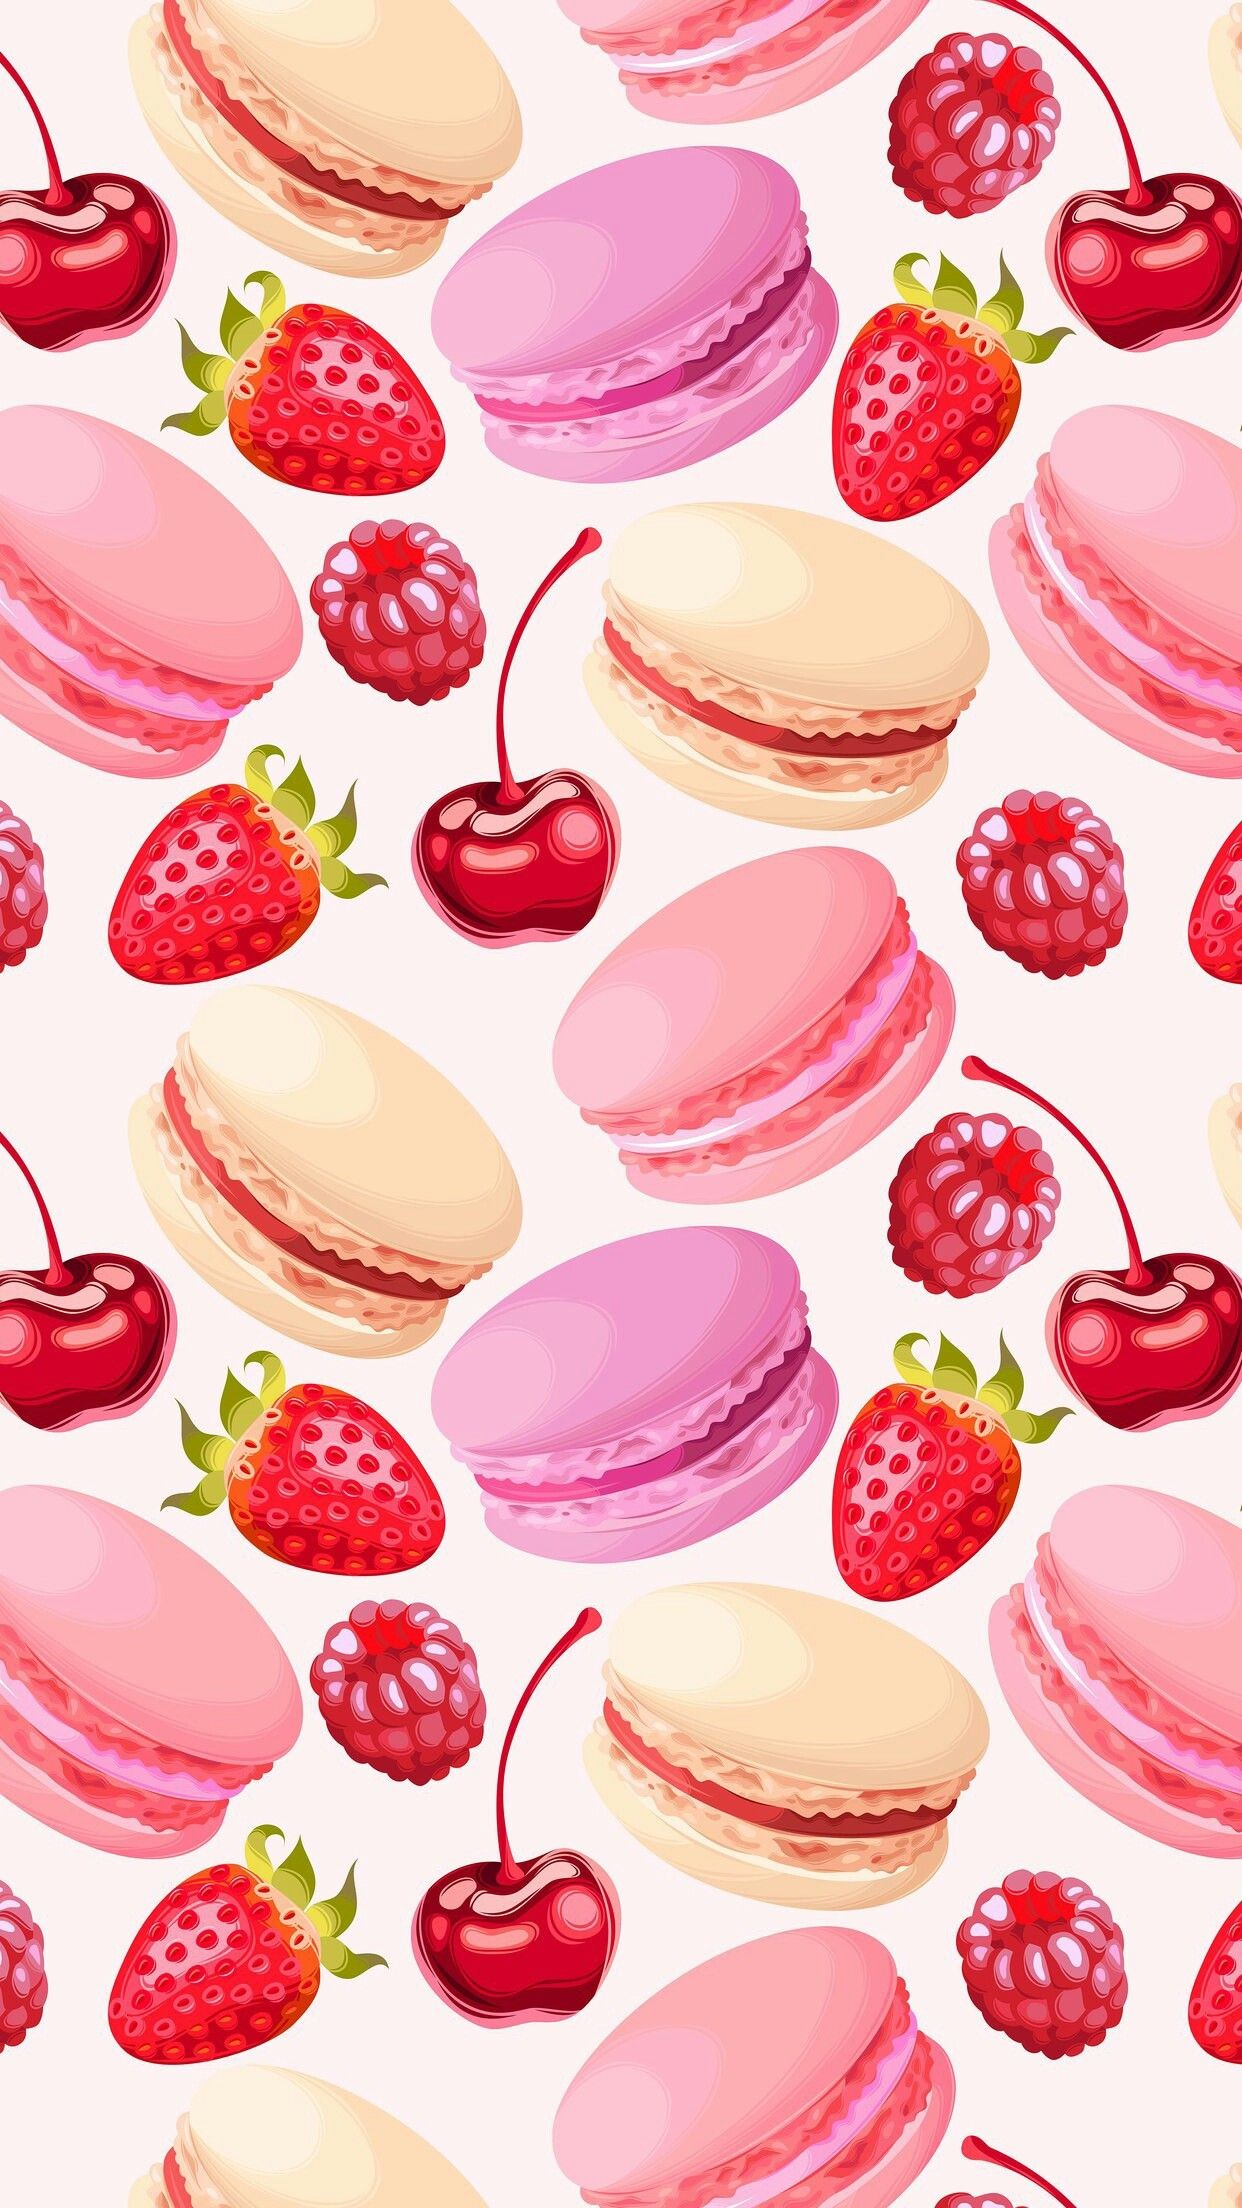 Res: 1242x2208, Cute Girly Macaroon Wallpaper for Iphone - Best Wallpaper HD